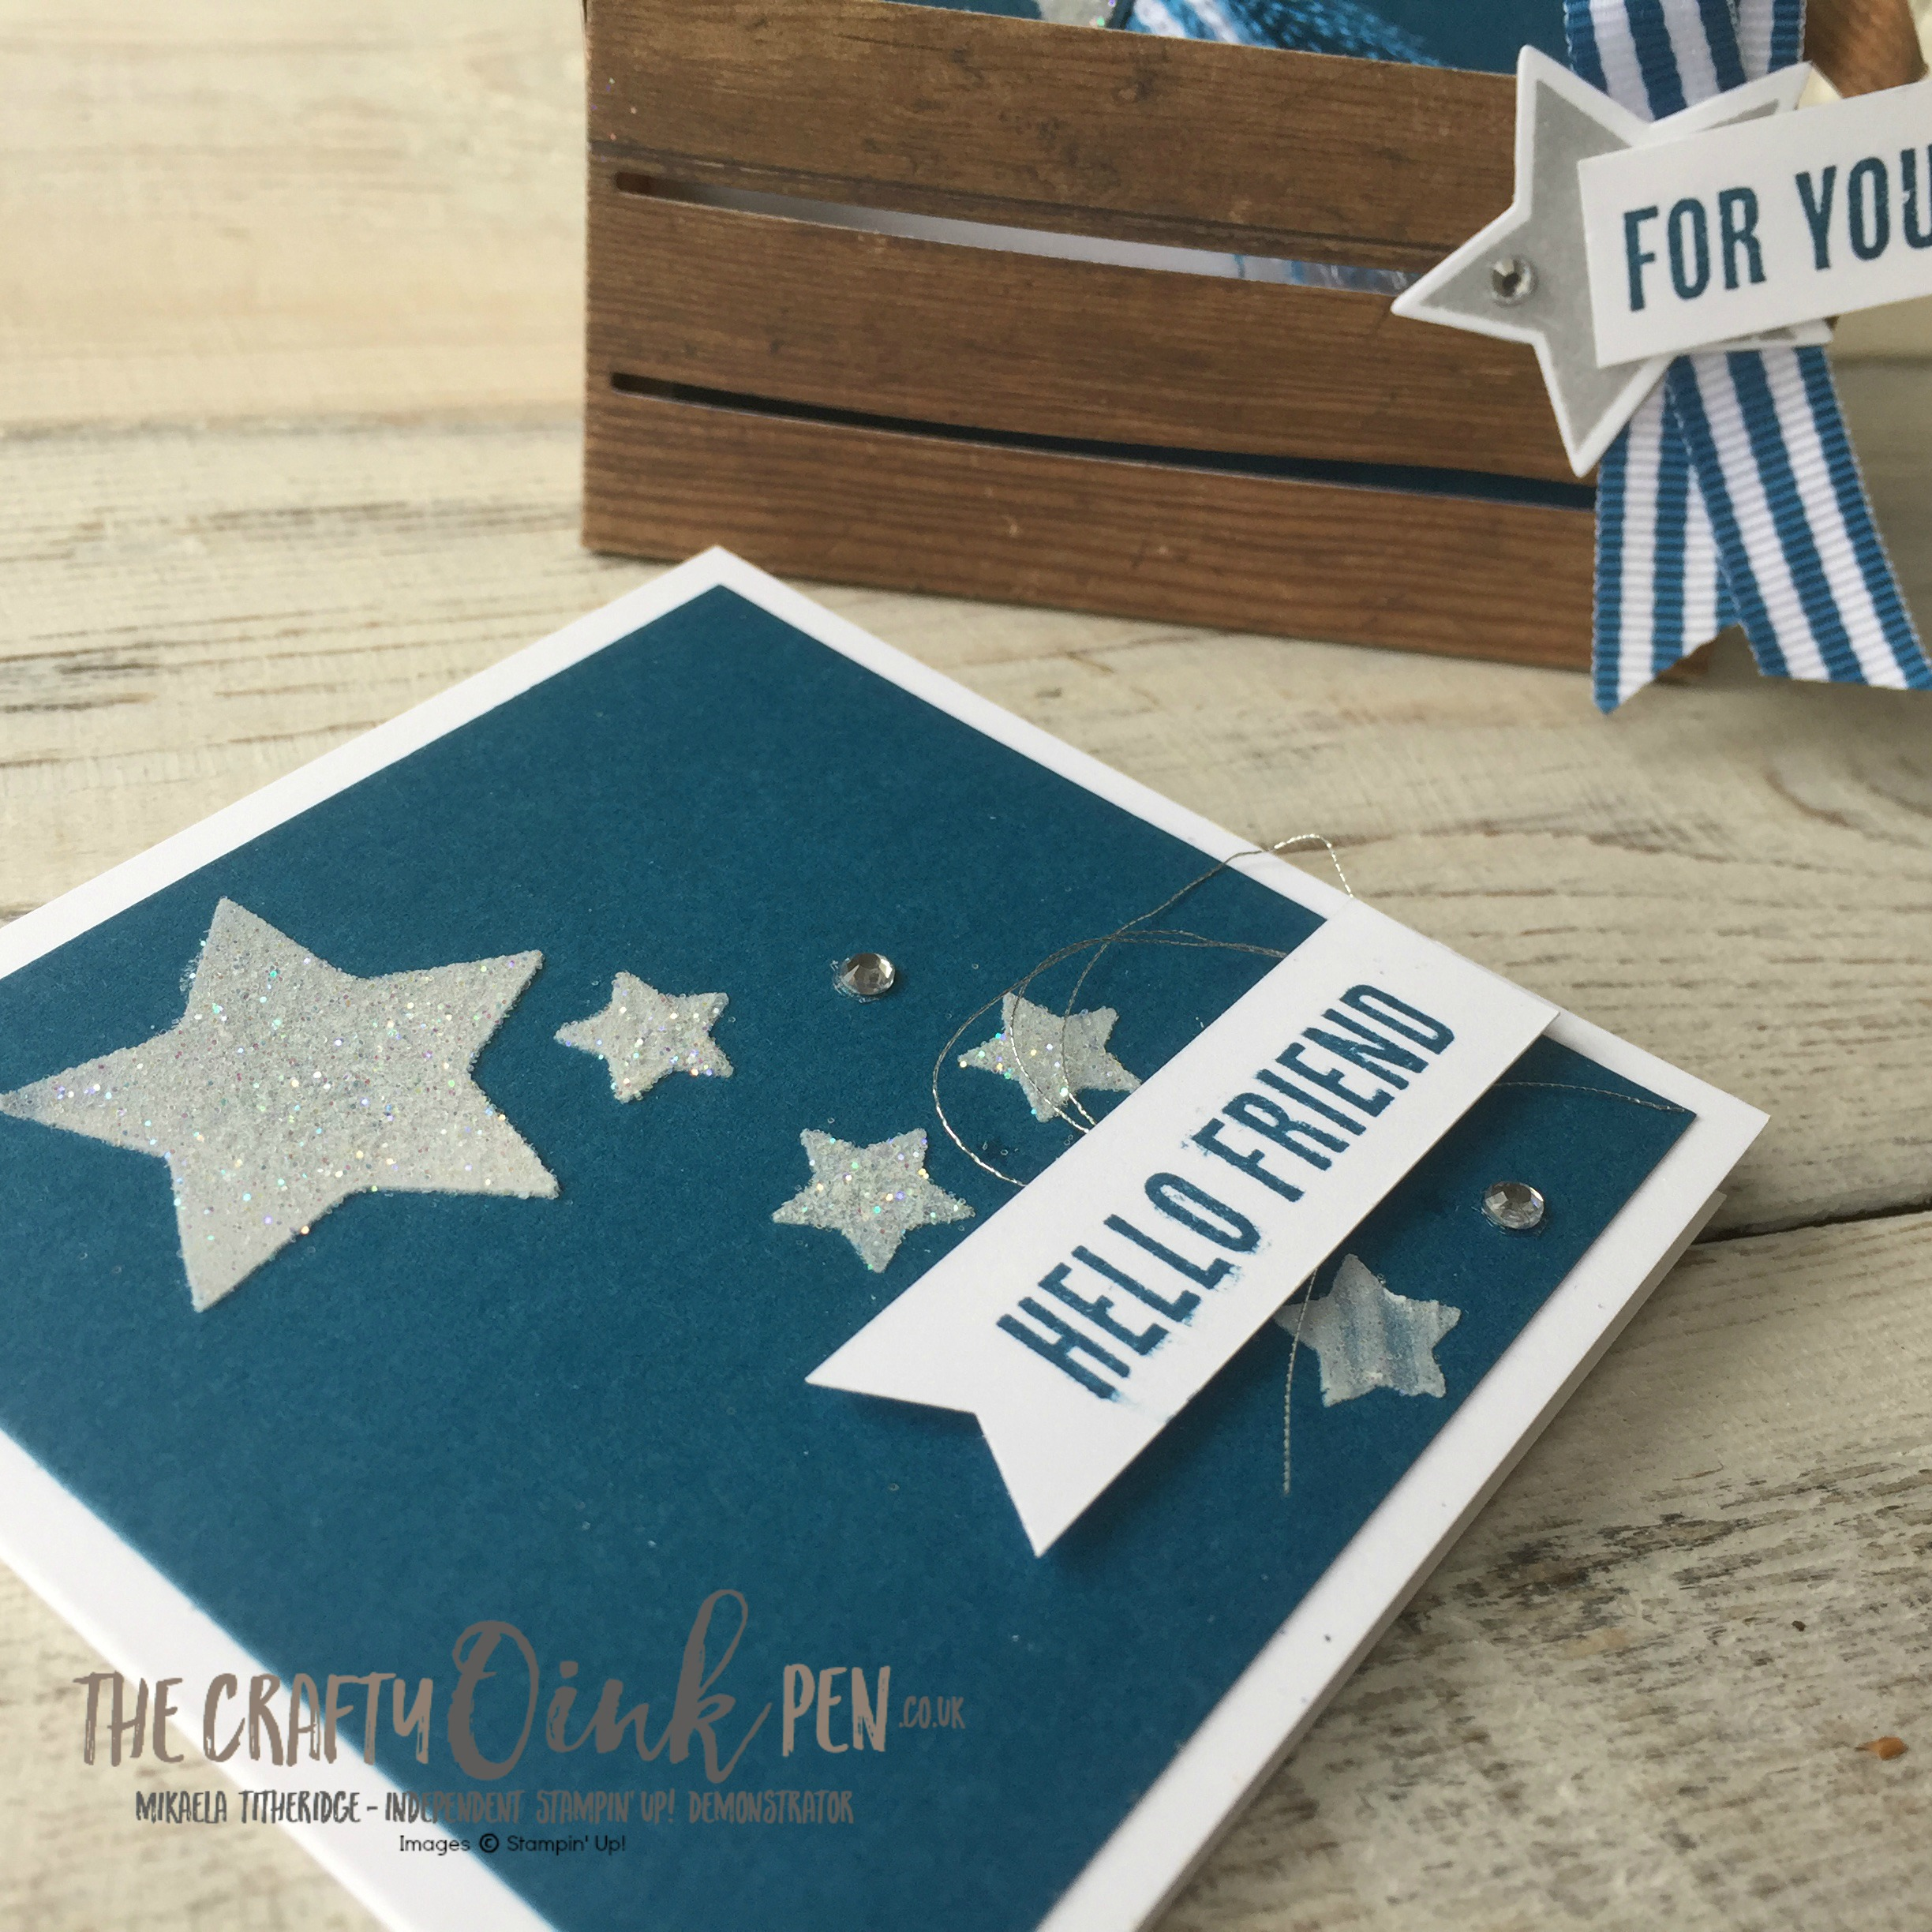 Mikaela Titheridge, Independent Stampin' Up! Demo, The Crafty oINK Pen stares Tricks of the Trade with Wood Words